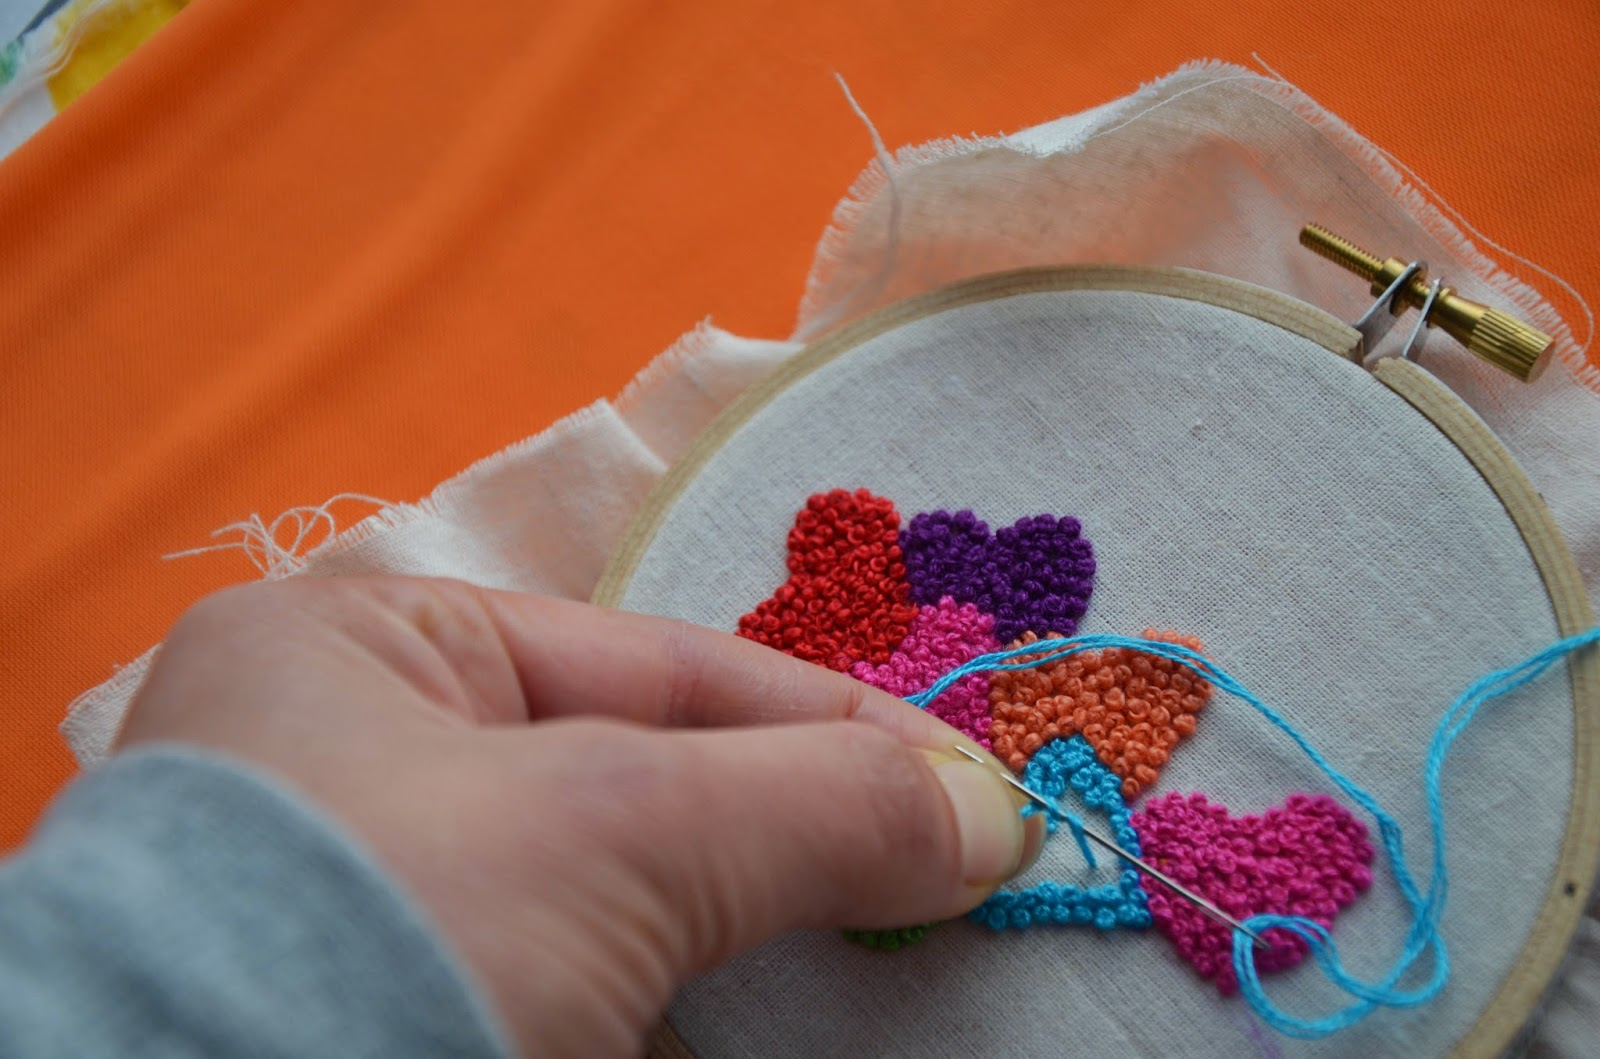 Steps 3 & 4: Wrap your thread around your needle twice with a firm grip